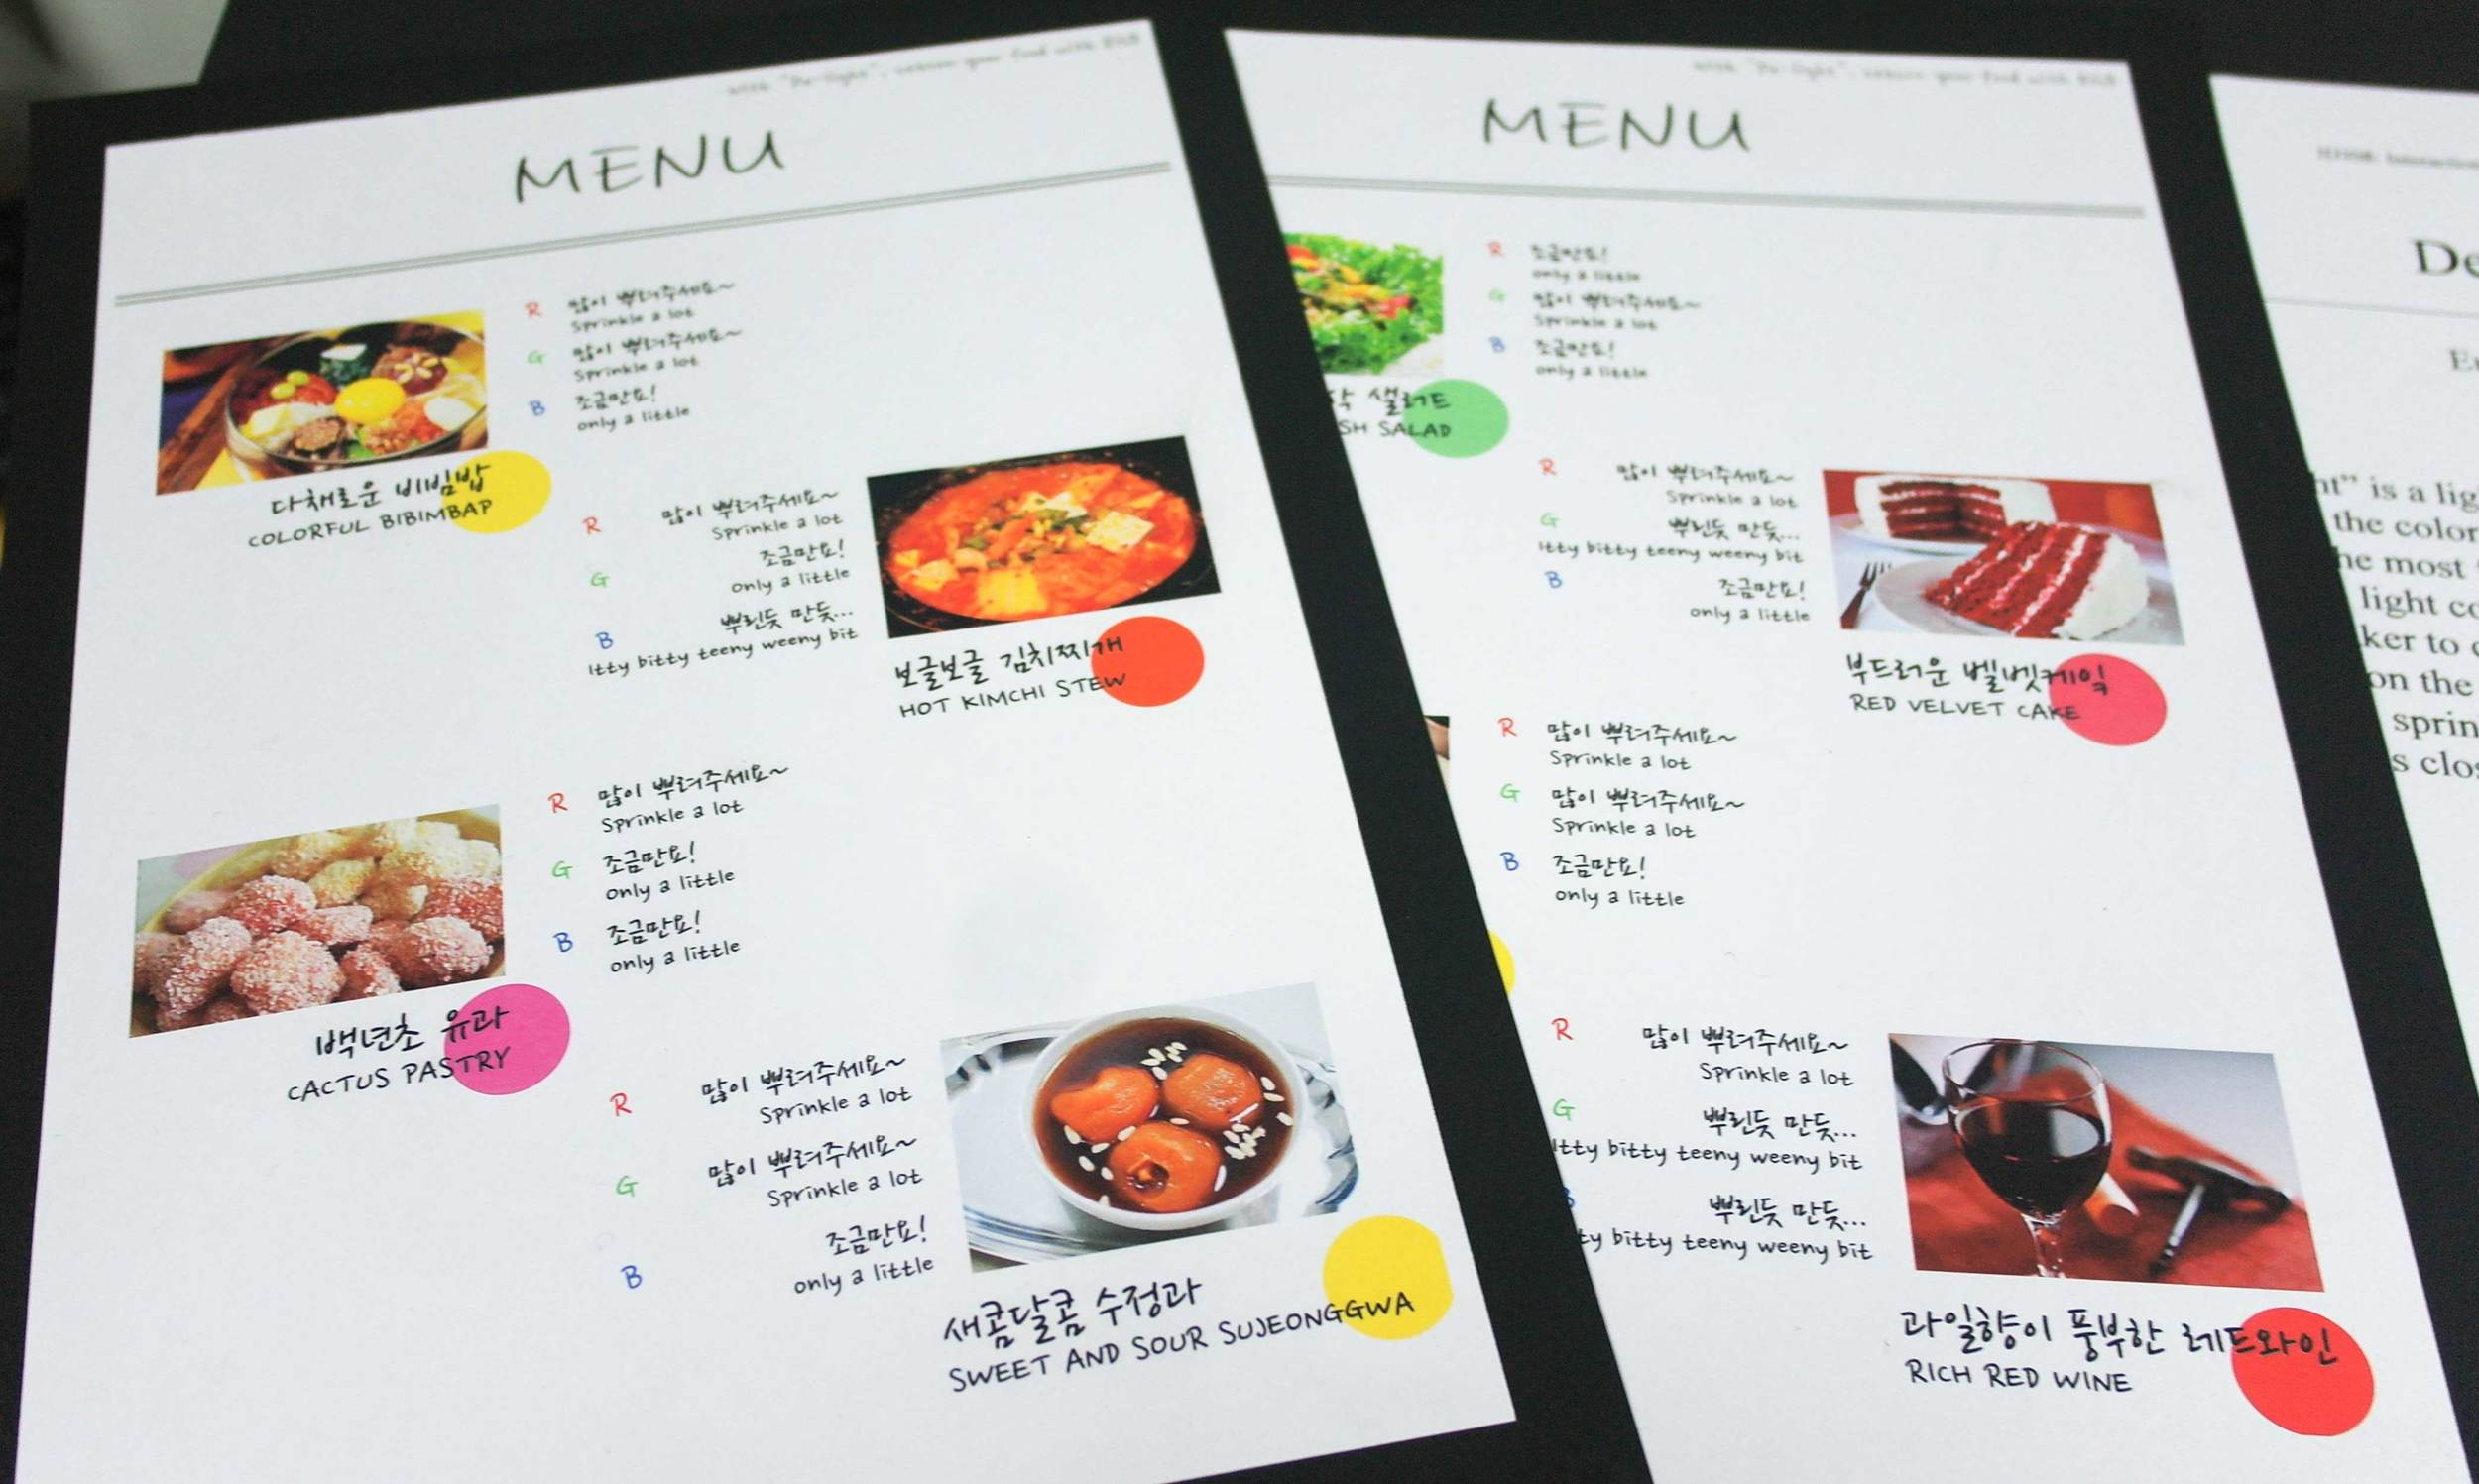 Menu that indicates the optimal amount of RGB to sprinkle for the best taste